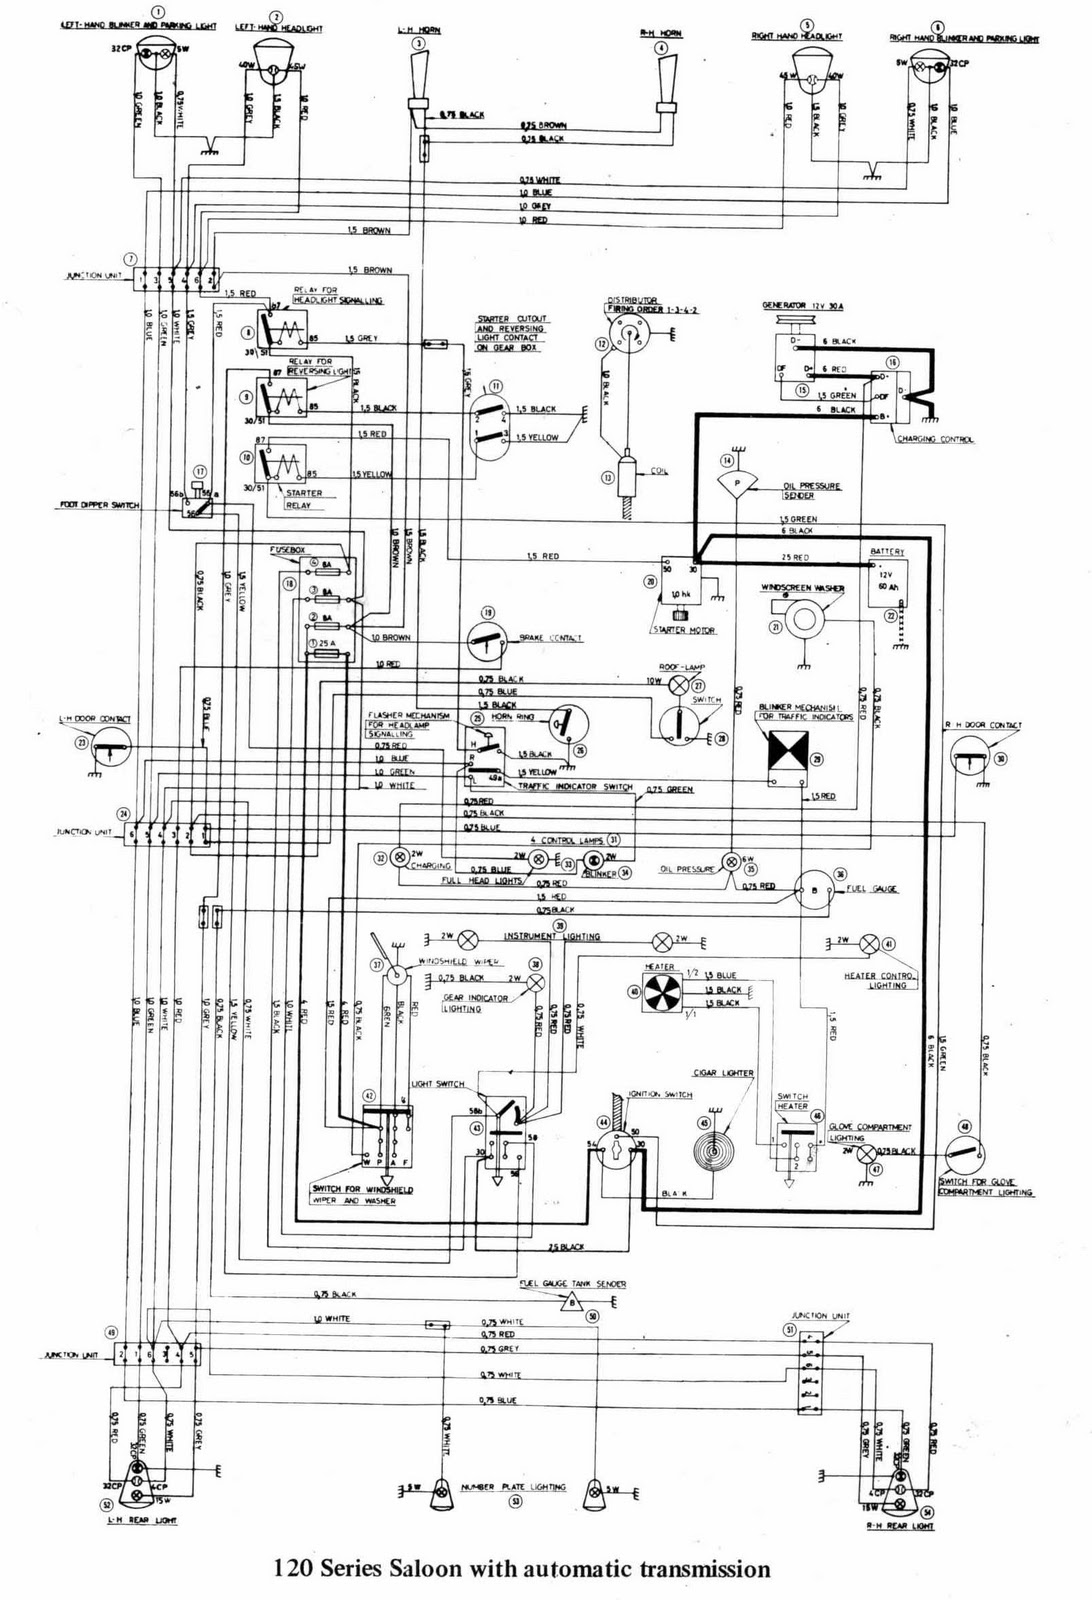 medium resolution of wiring diagram 1998 volvo v70 glt wiring diagram third level rh 17 19 13 jacobwinterstein com 2001 volvo s60 engine diagram volvo s80 wiring diagram